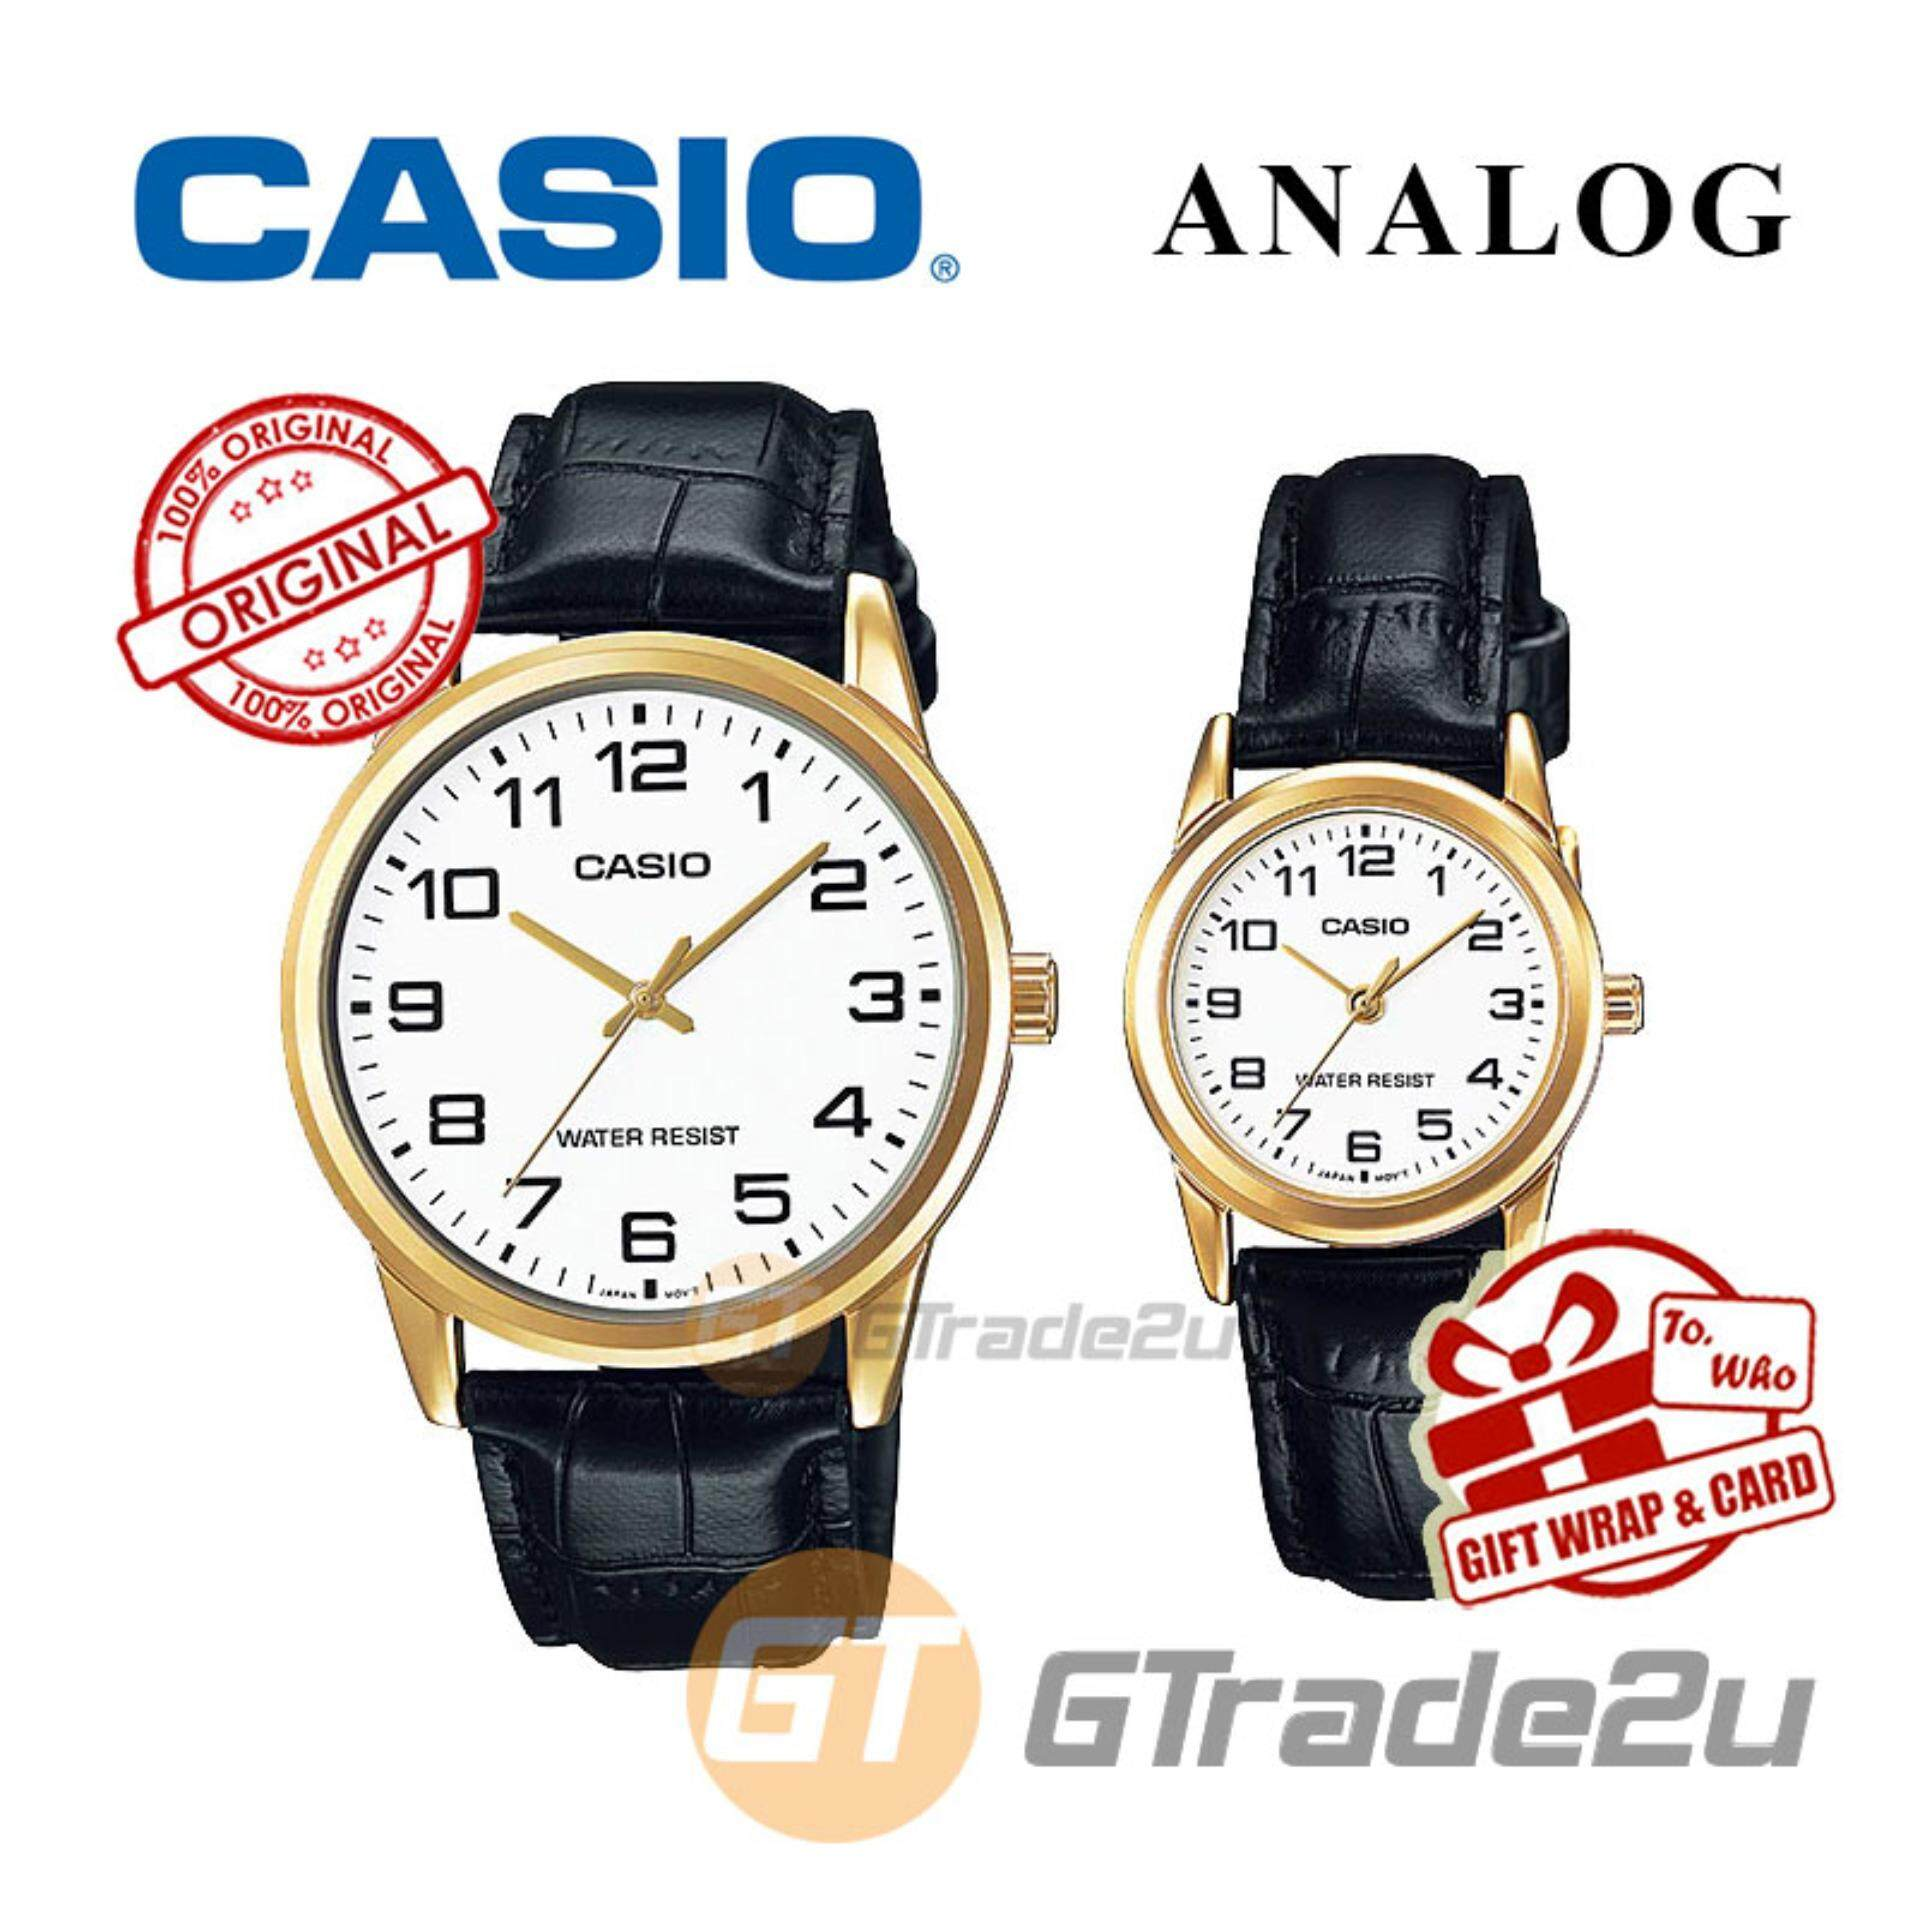 Casio Couple Watch Jam Tangan Pasangan Silver Gold Strap Stainless 1233d 7a Steel V006sg